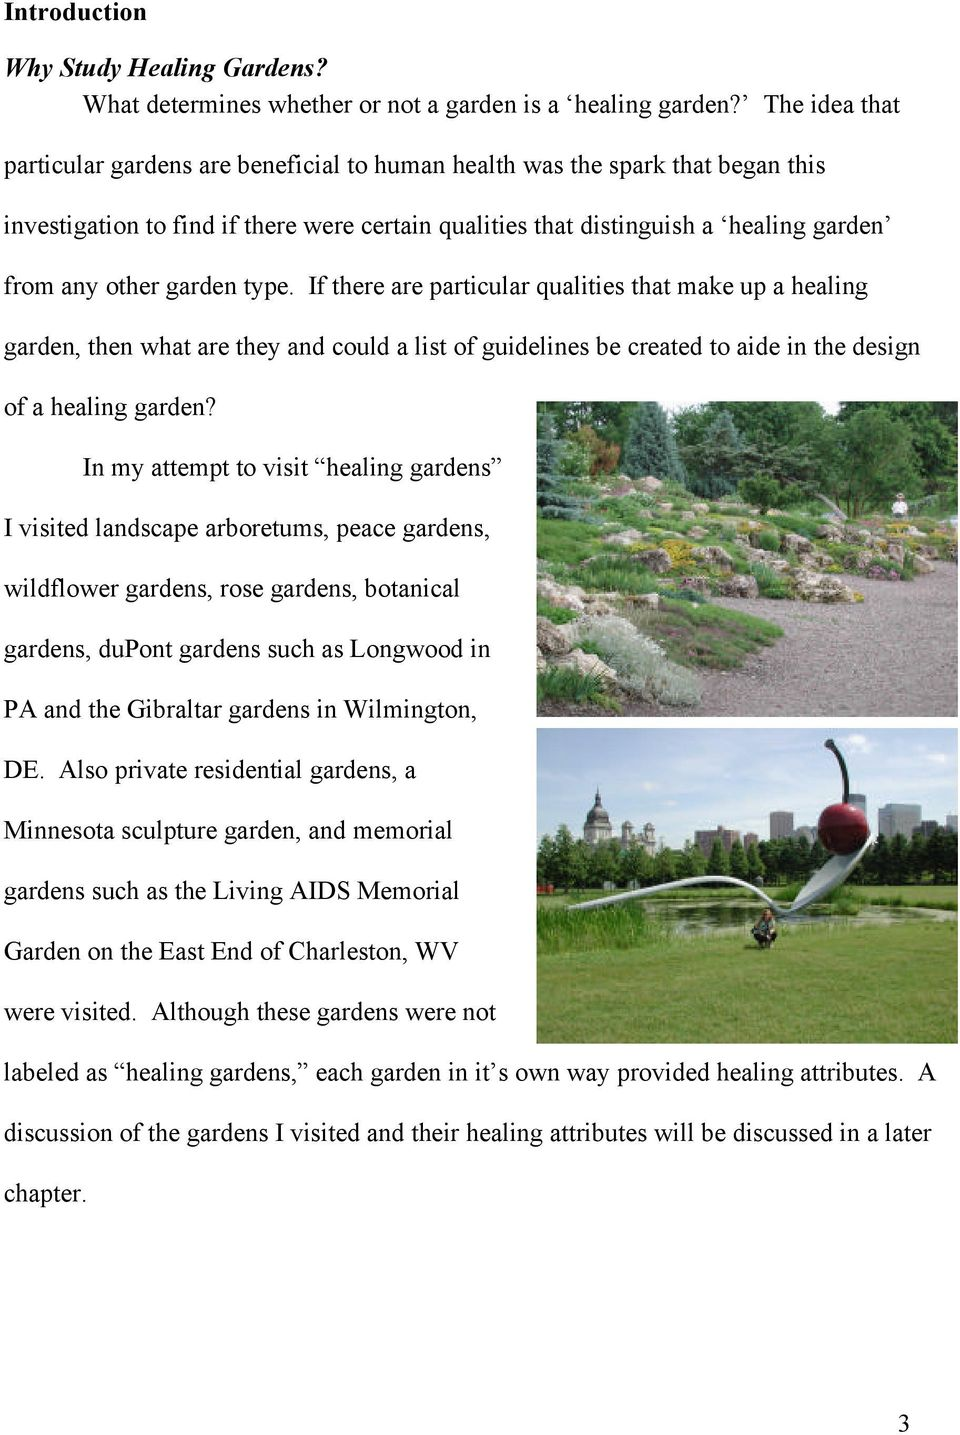 garden type. If there are particular qualities that make up a healing garden, then what are they and could a list of guidelines be created to aide in the design of a healing garden?